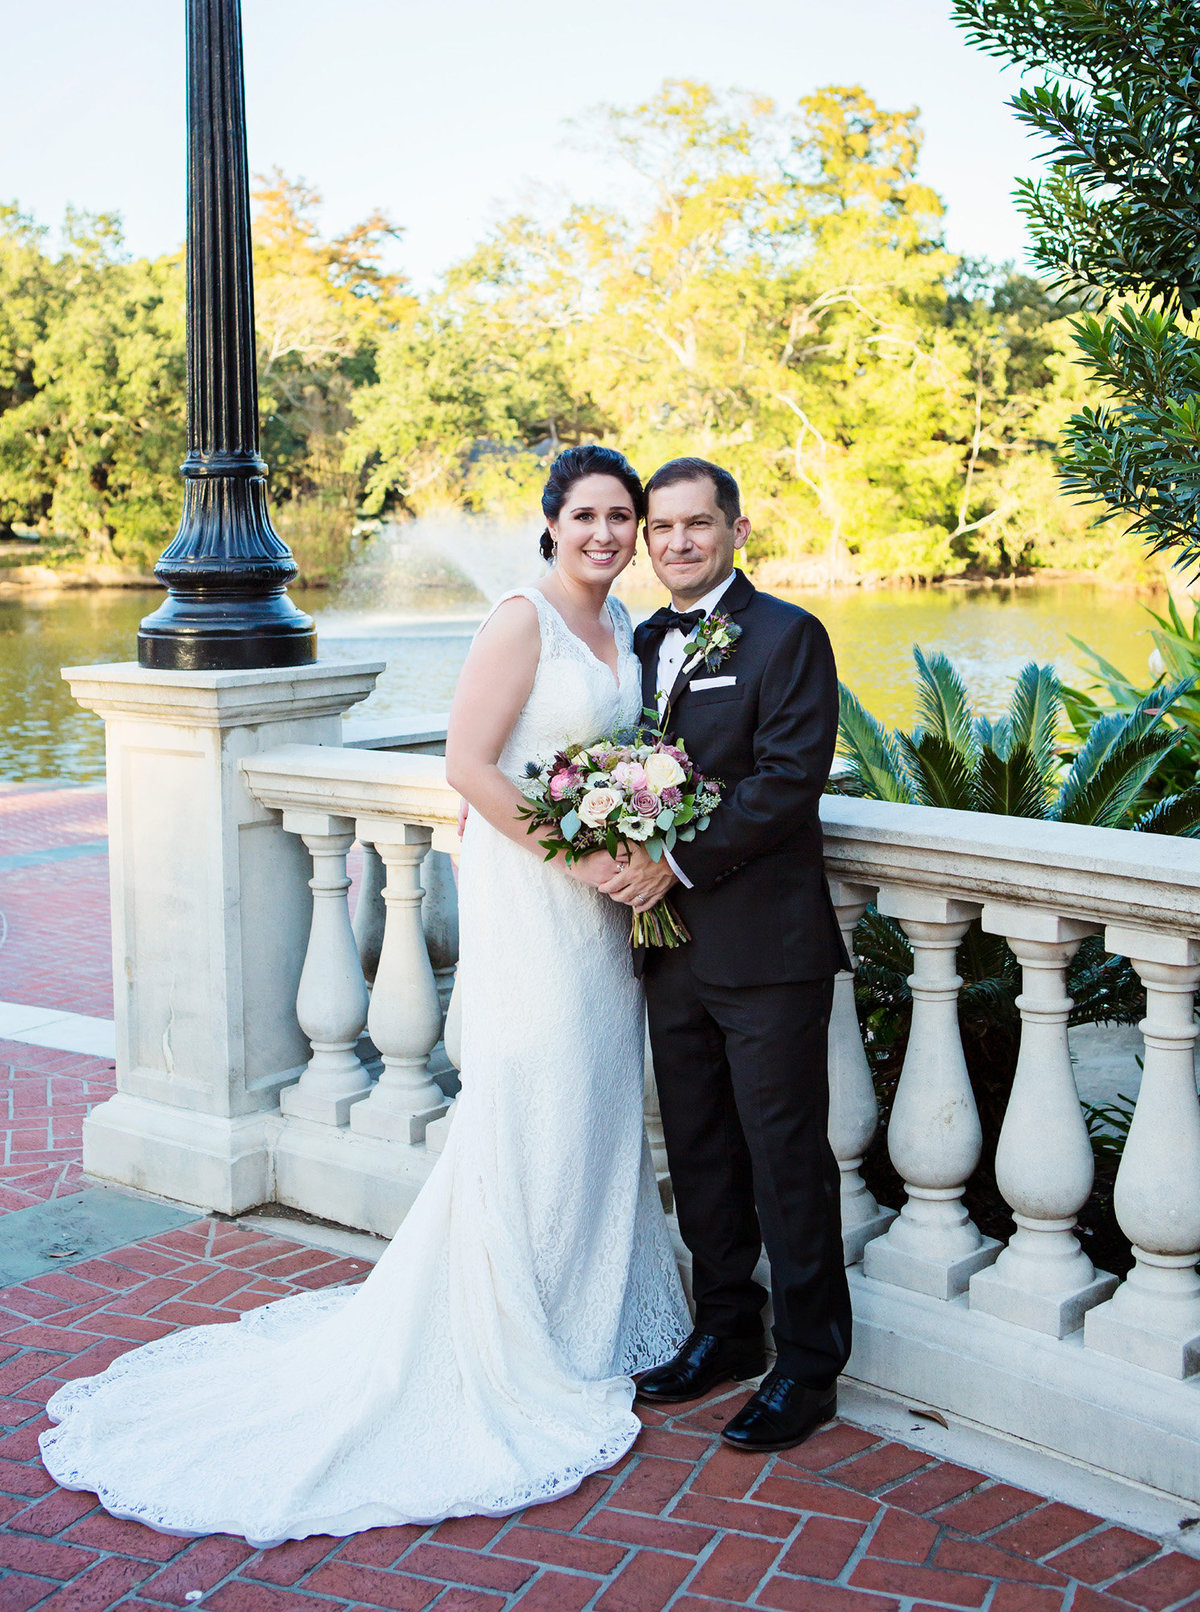 Audubon Park bride and groom portrait in front of pond